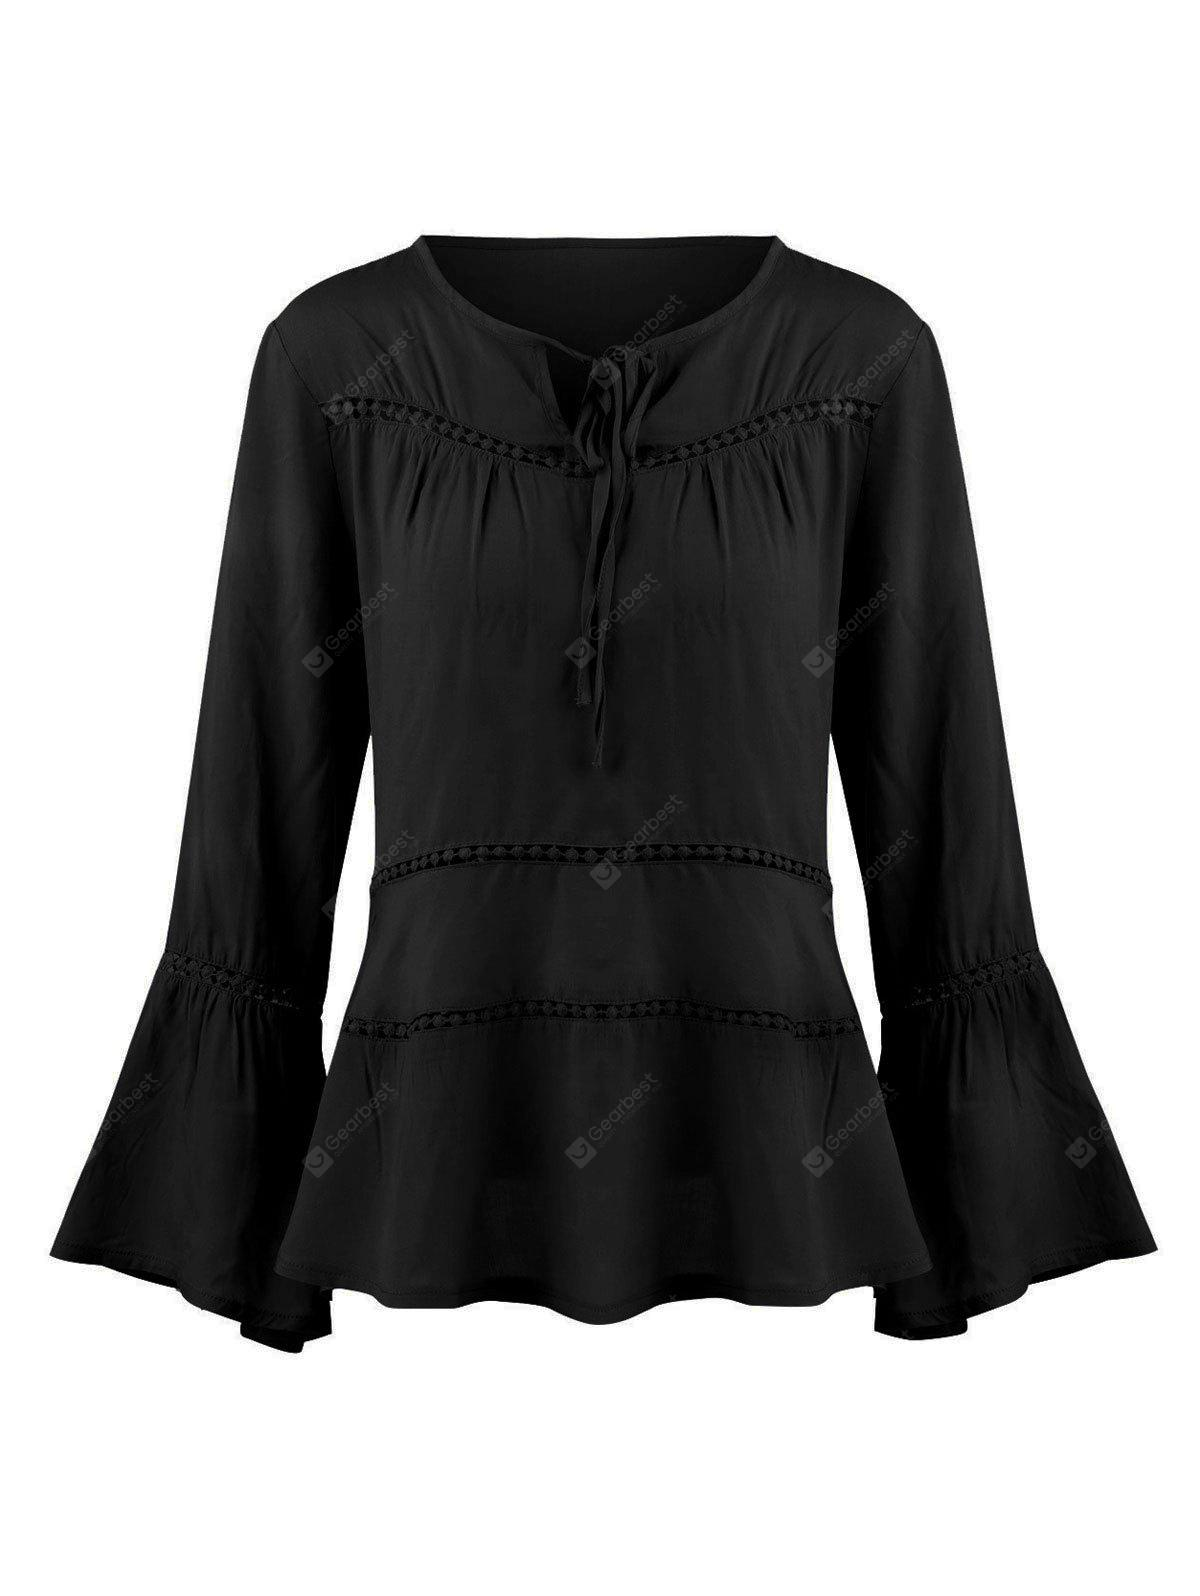 Flare Sleeve Hollow Out Blusa